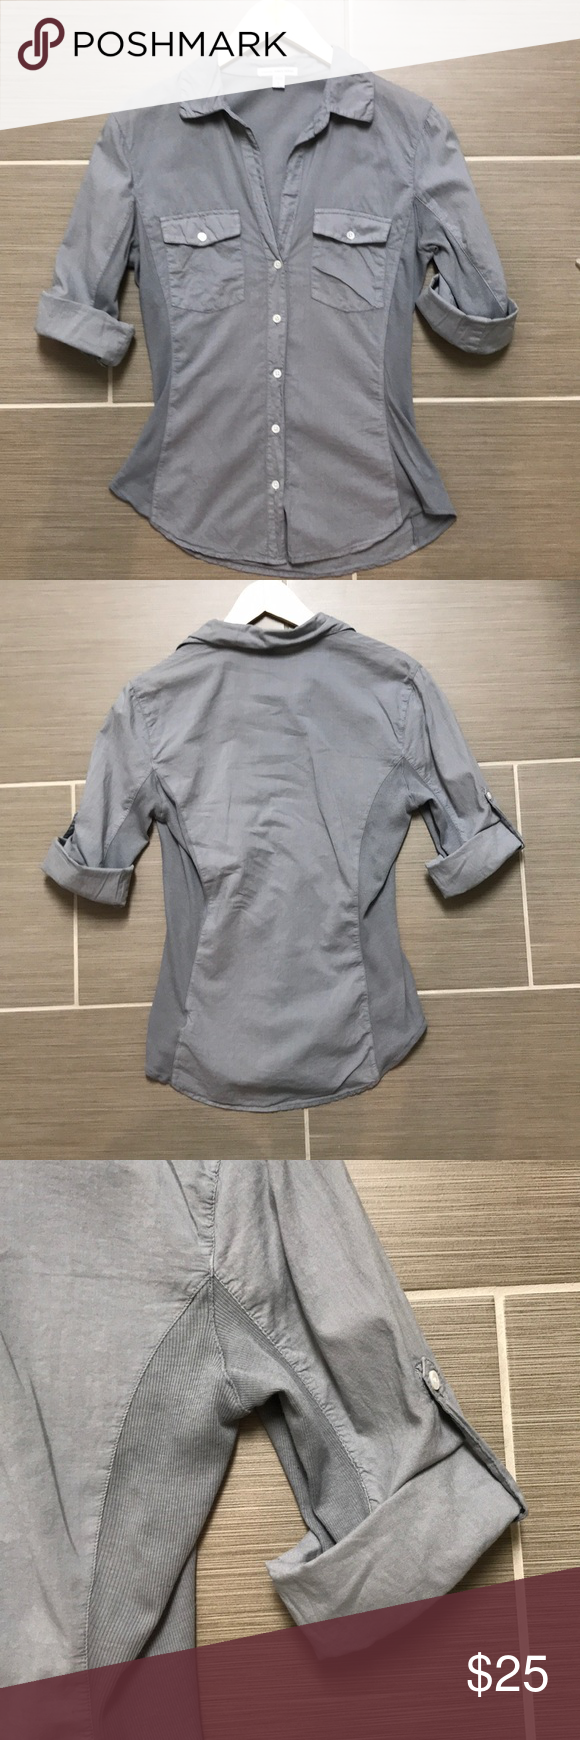 7a0ba9f9 James Perse 3/4 Sleeve Button Down Size 2 Grey James Perse Grey Button-